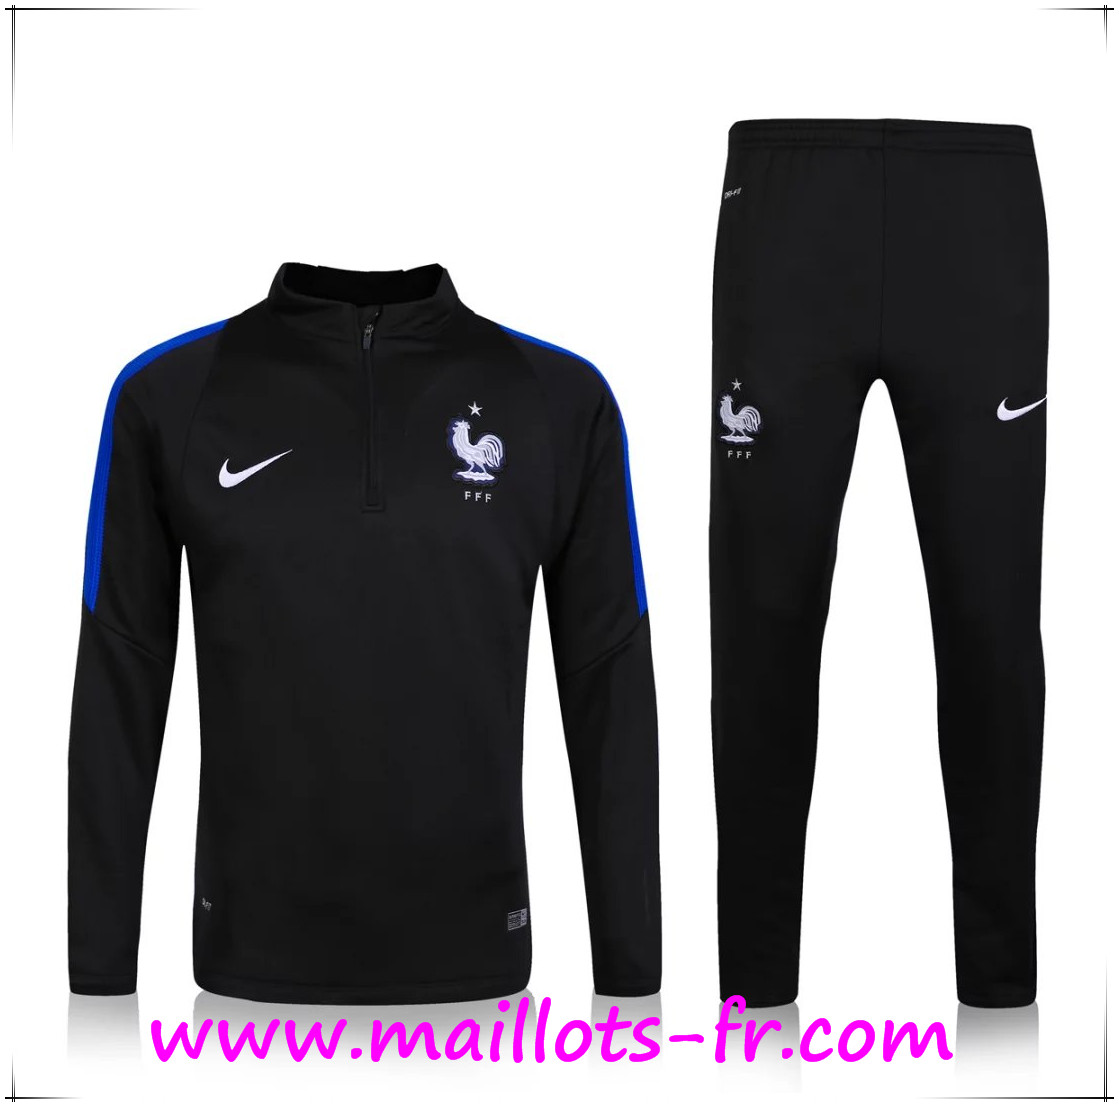 maillots-fr Survetement France Enfant Noir 2016 2017